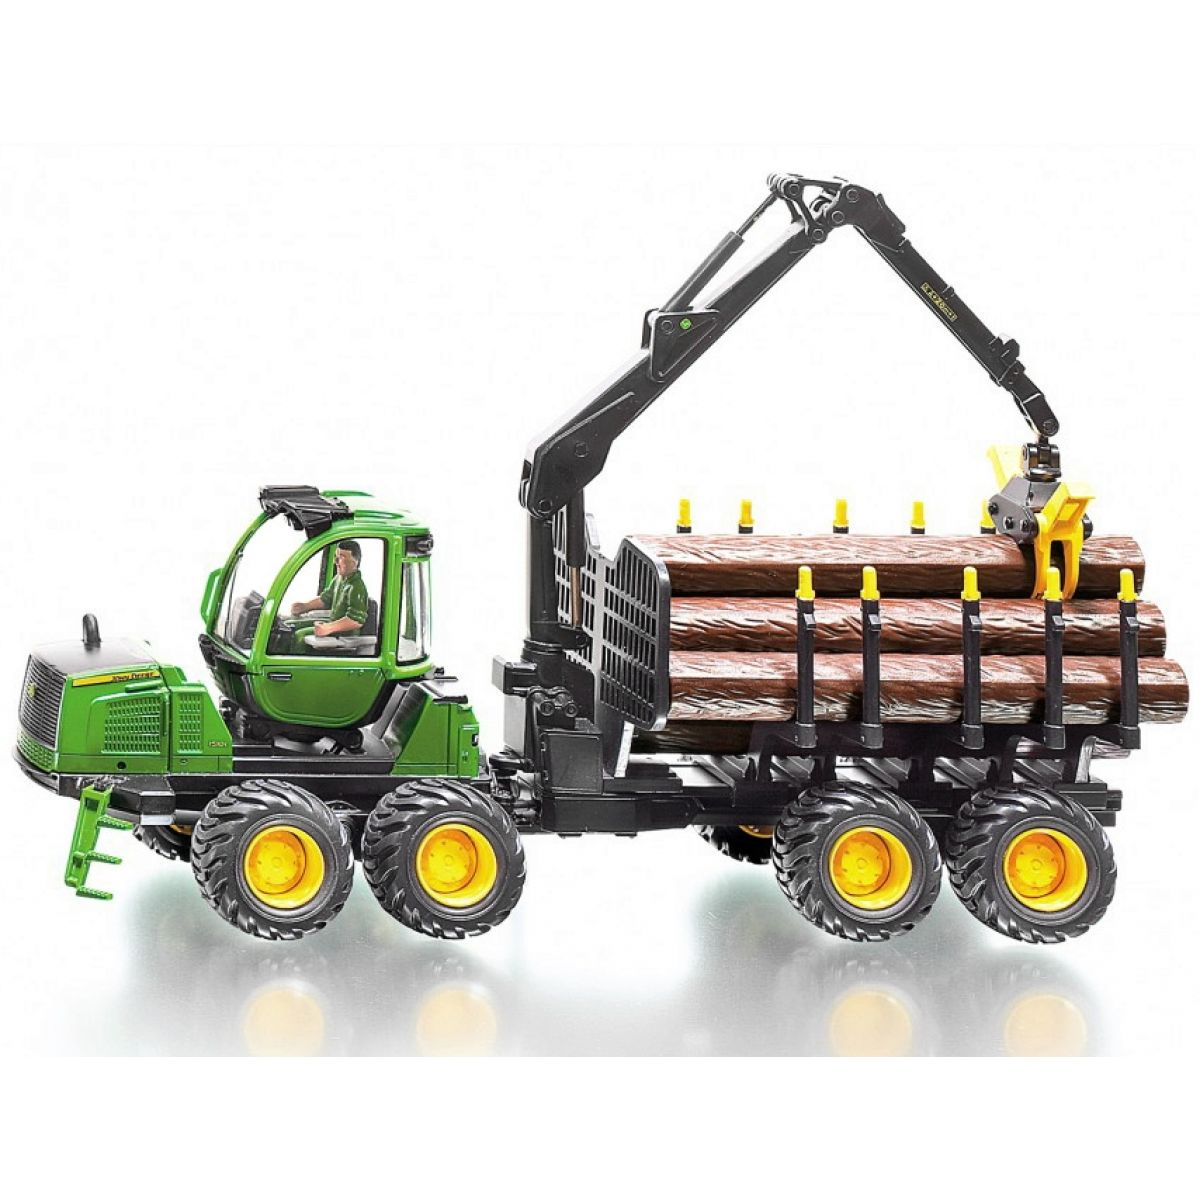 Siku Farmer 4061 John Deere Forwarder